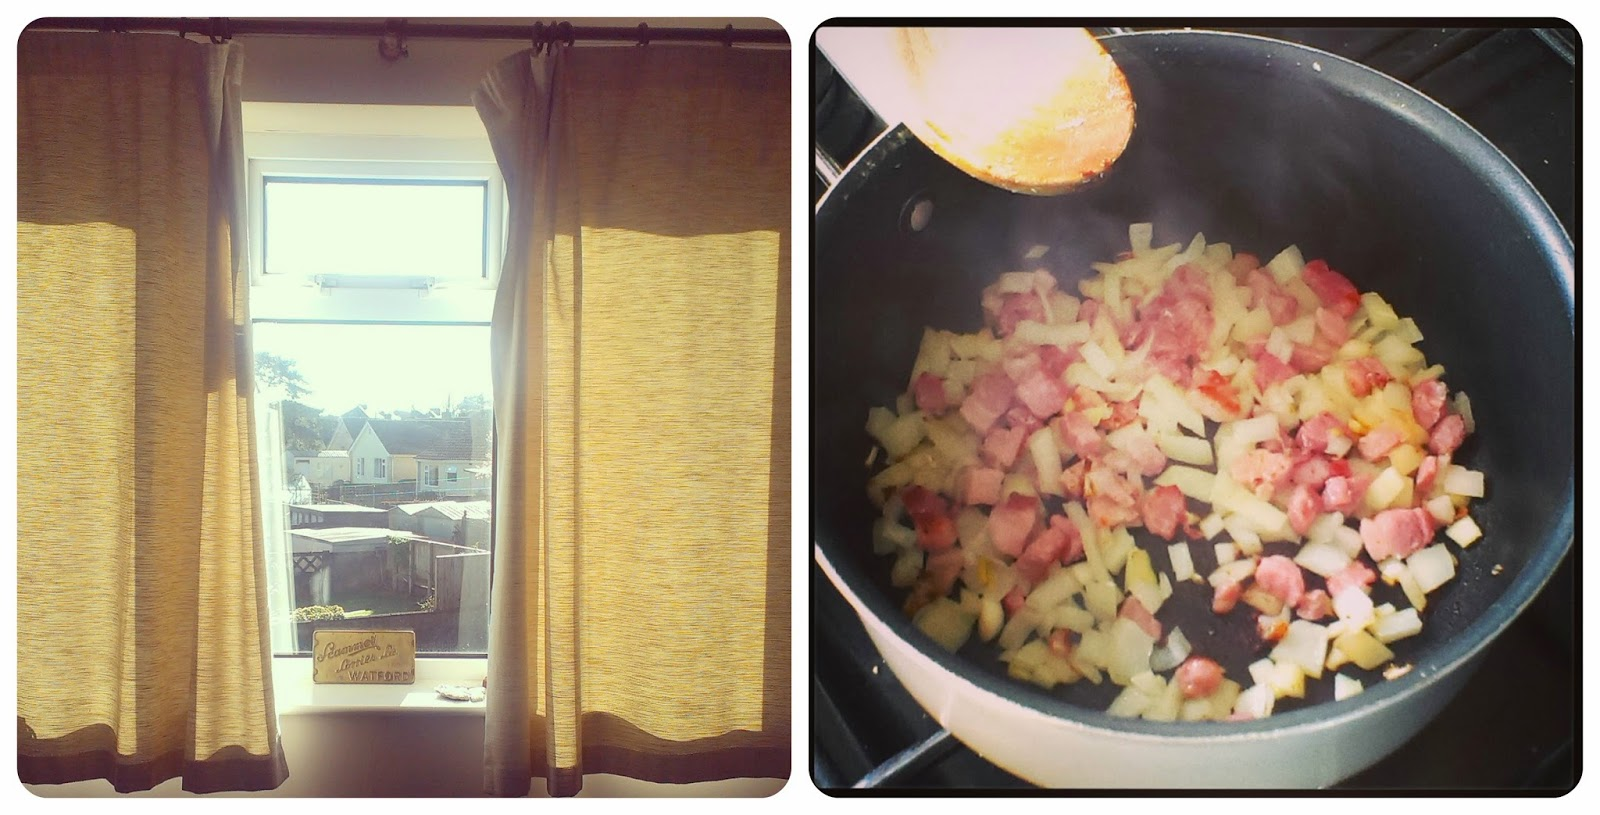 Sunlight and breakfast